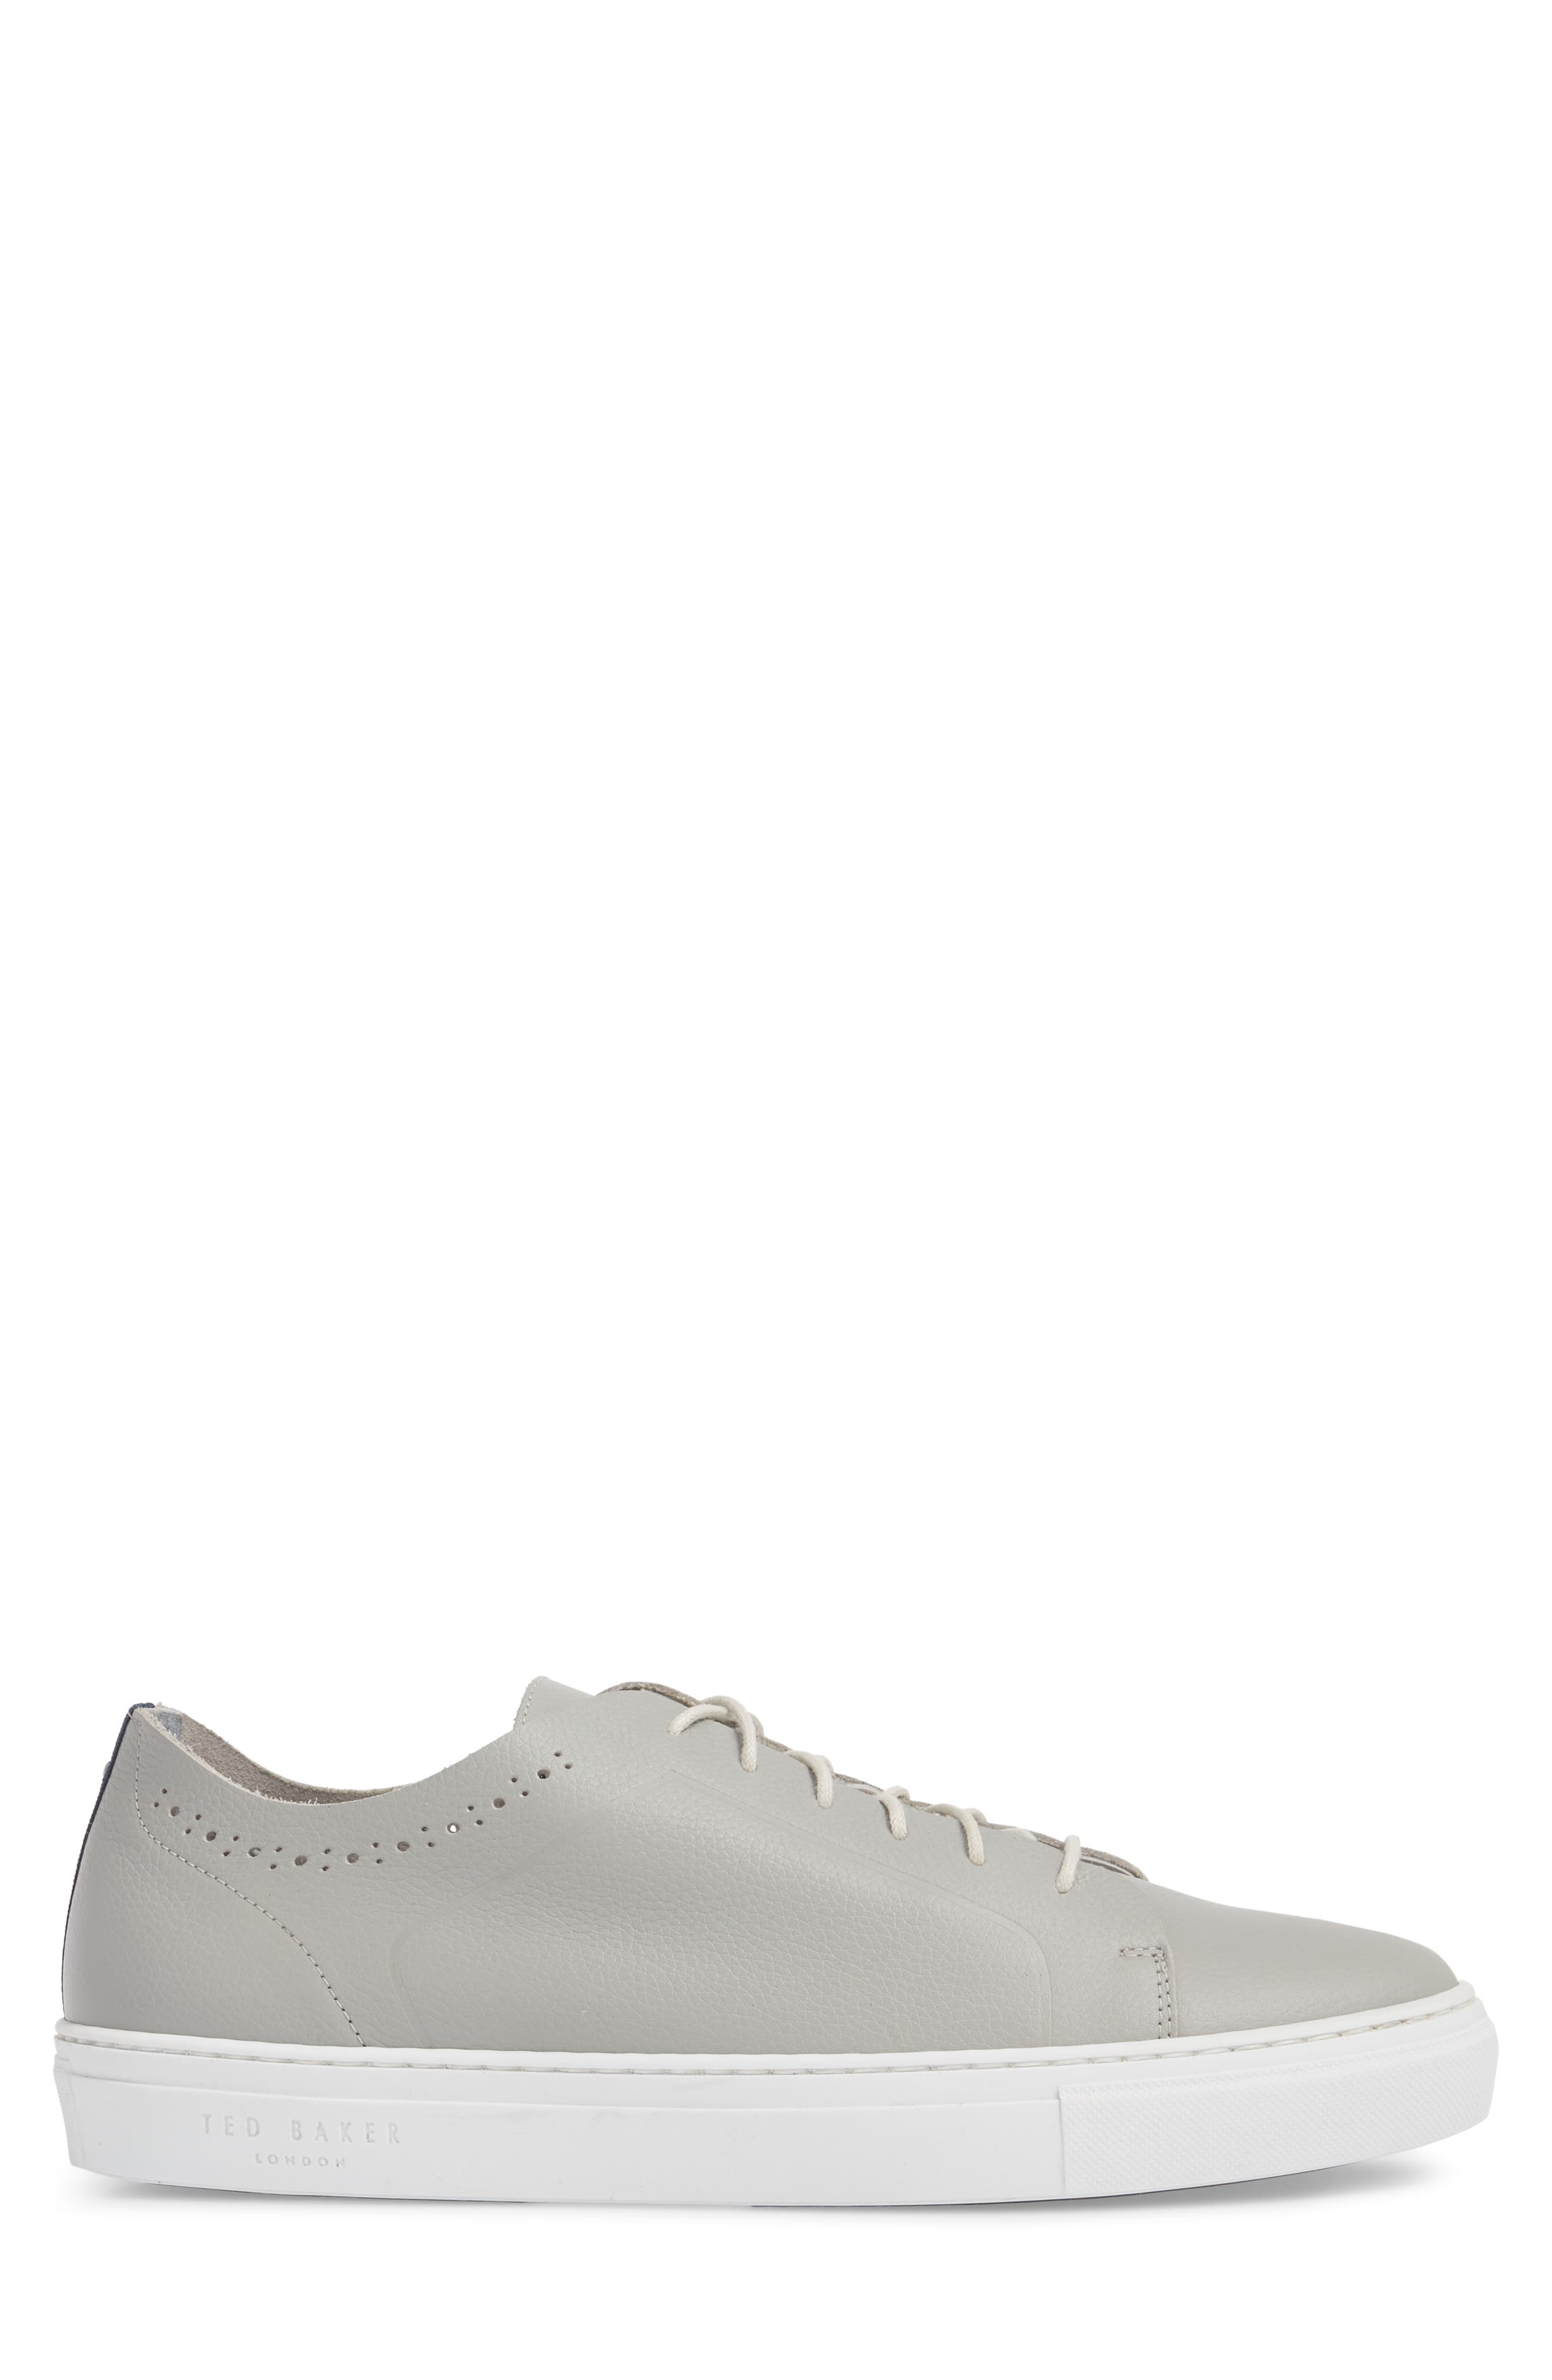 Nowull Brogued Sneaker,                             Alternate thumbnail 3, color,                             LIGHT GREY LEATHER